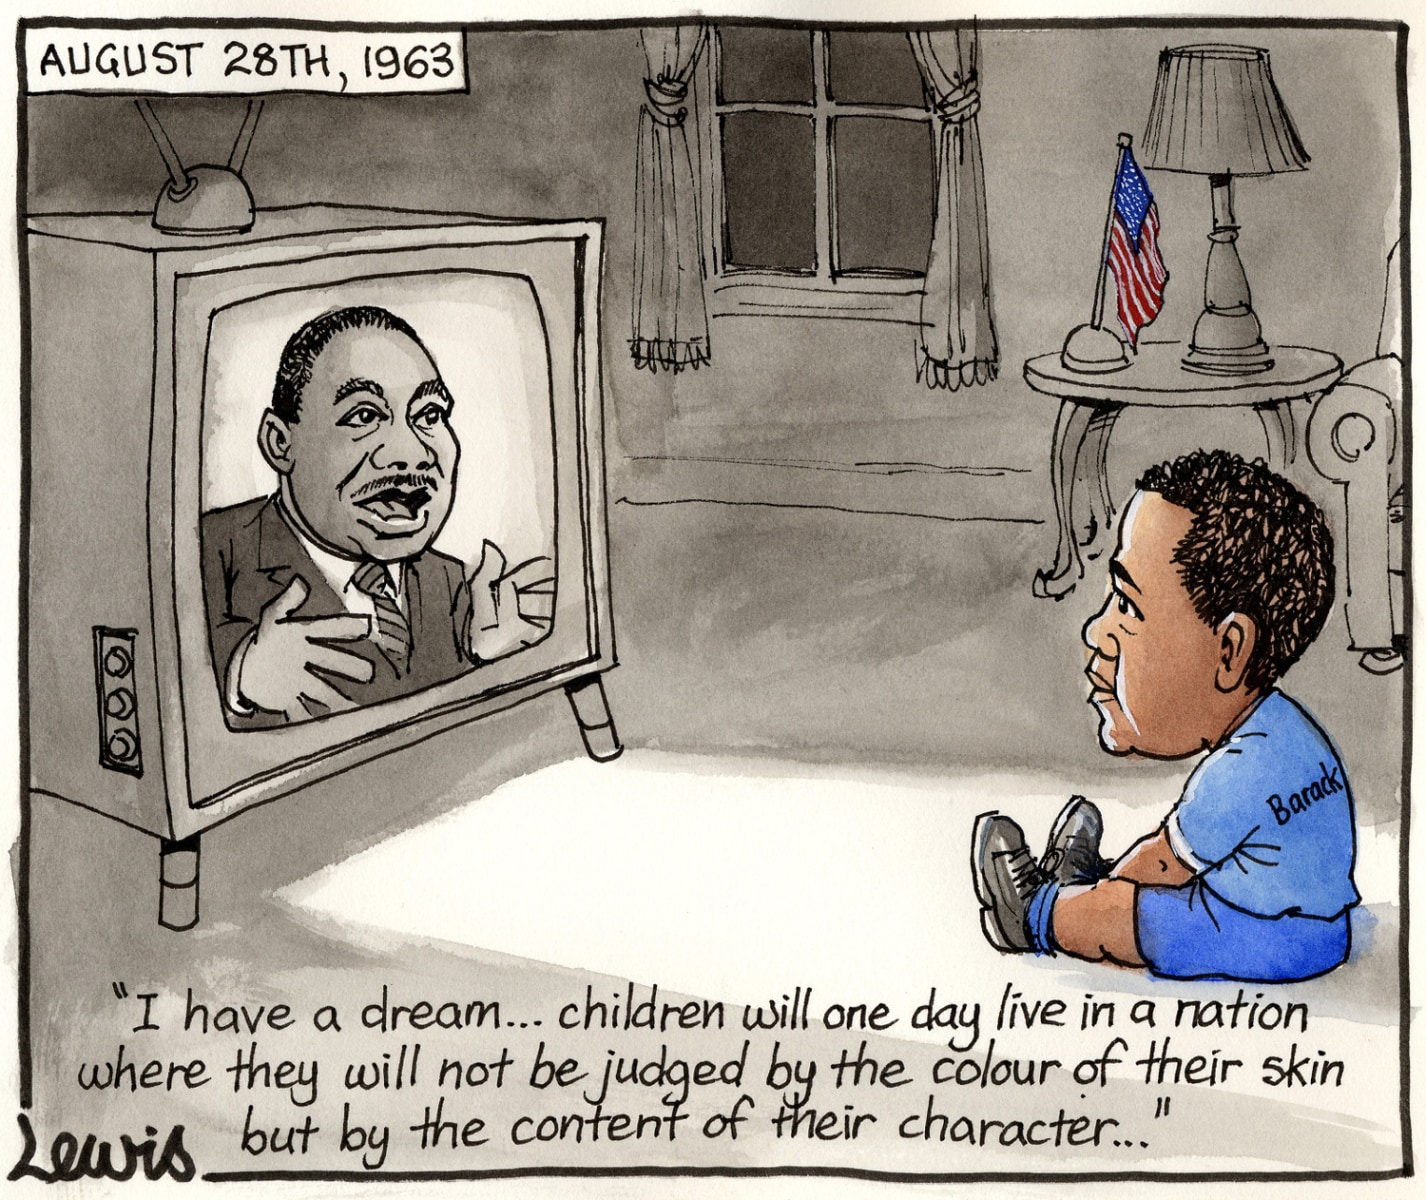 civil rights martin luther king Get an answer for 'what did martin luther king, jr do for civil rights' and find homework help for other history questions at enotes.